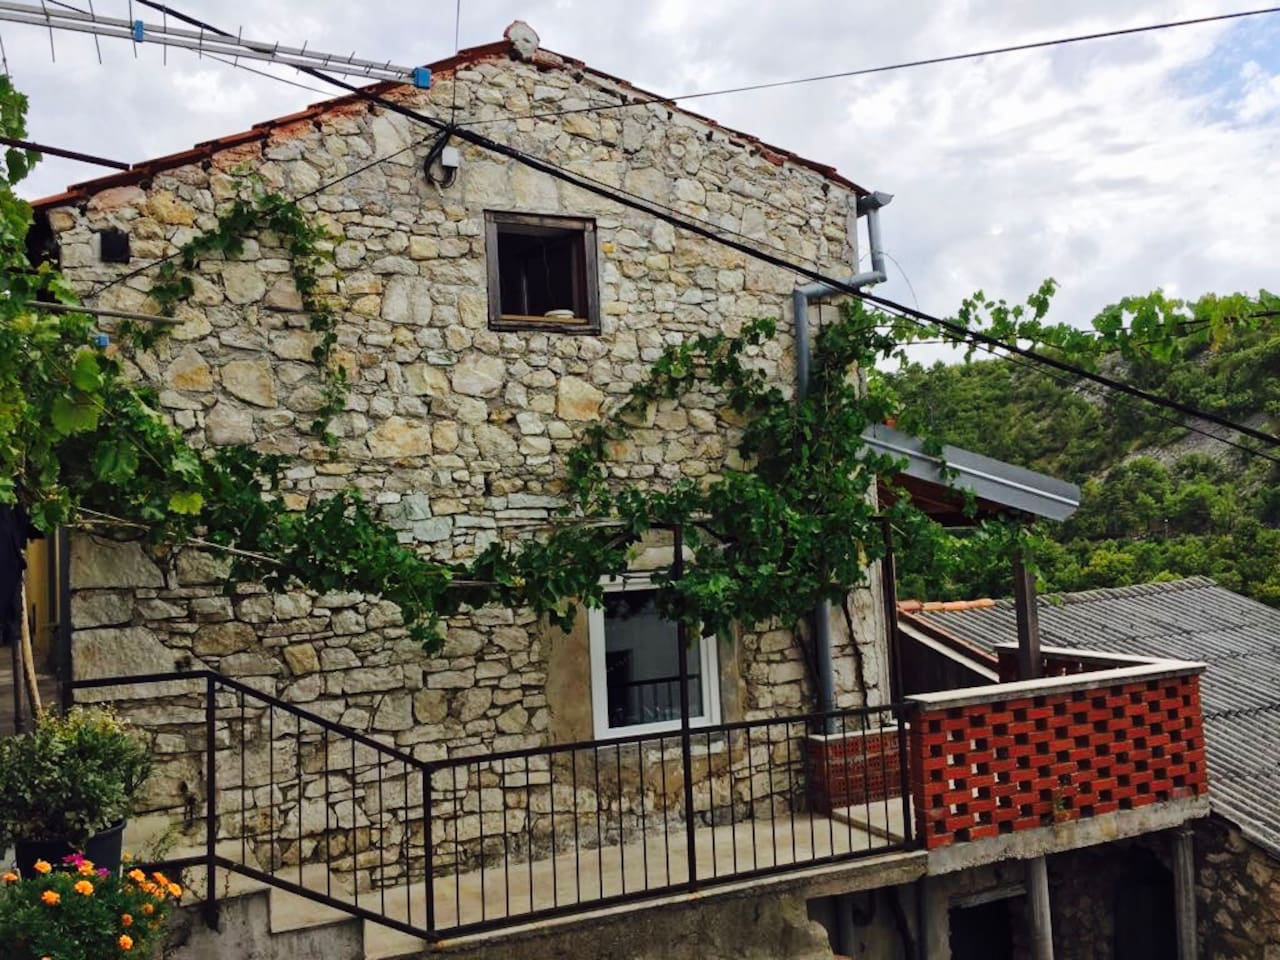 Over 200 years old stone house in picturesque fishermen's village Novigrad, located in the close vicinity of Zadar.